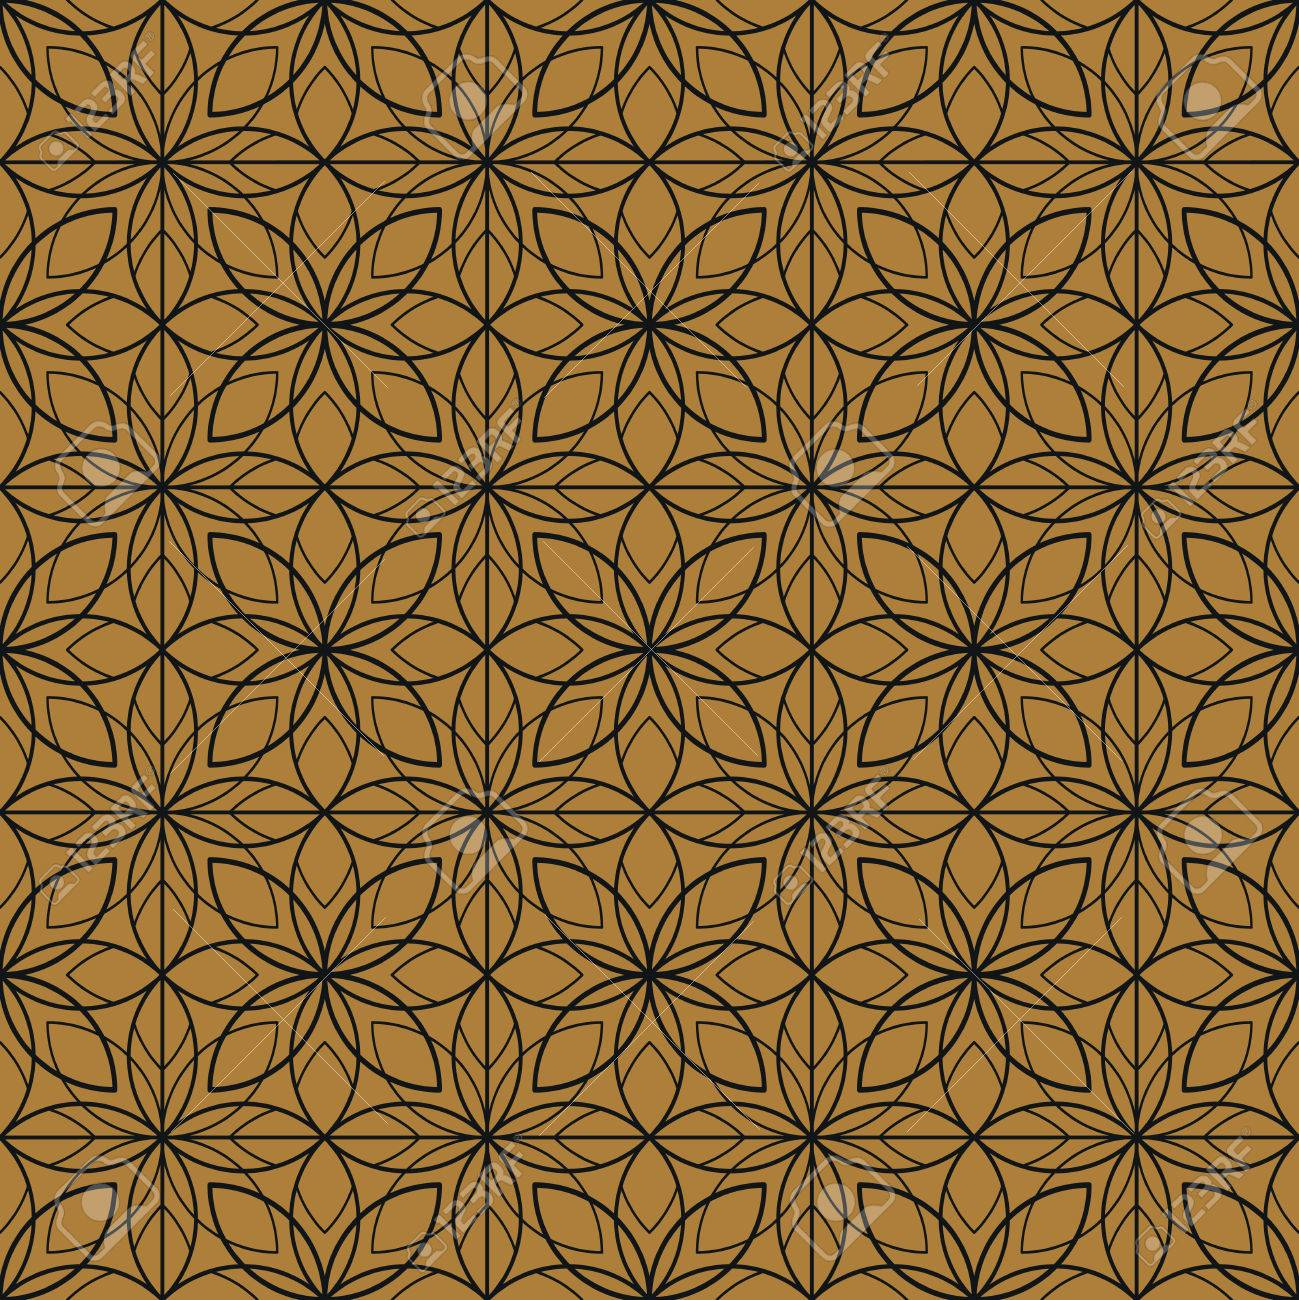 Art Deco Seamless Vintage Floral Wallpaper Pattern Royalty Free